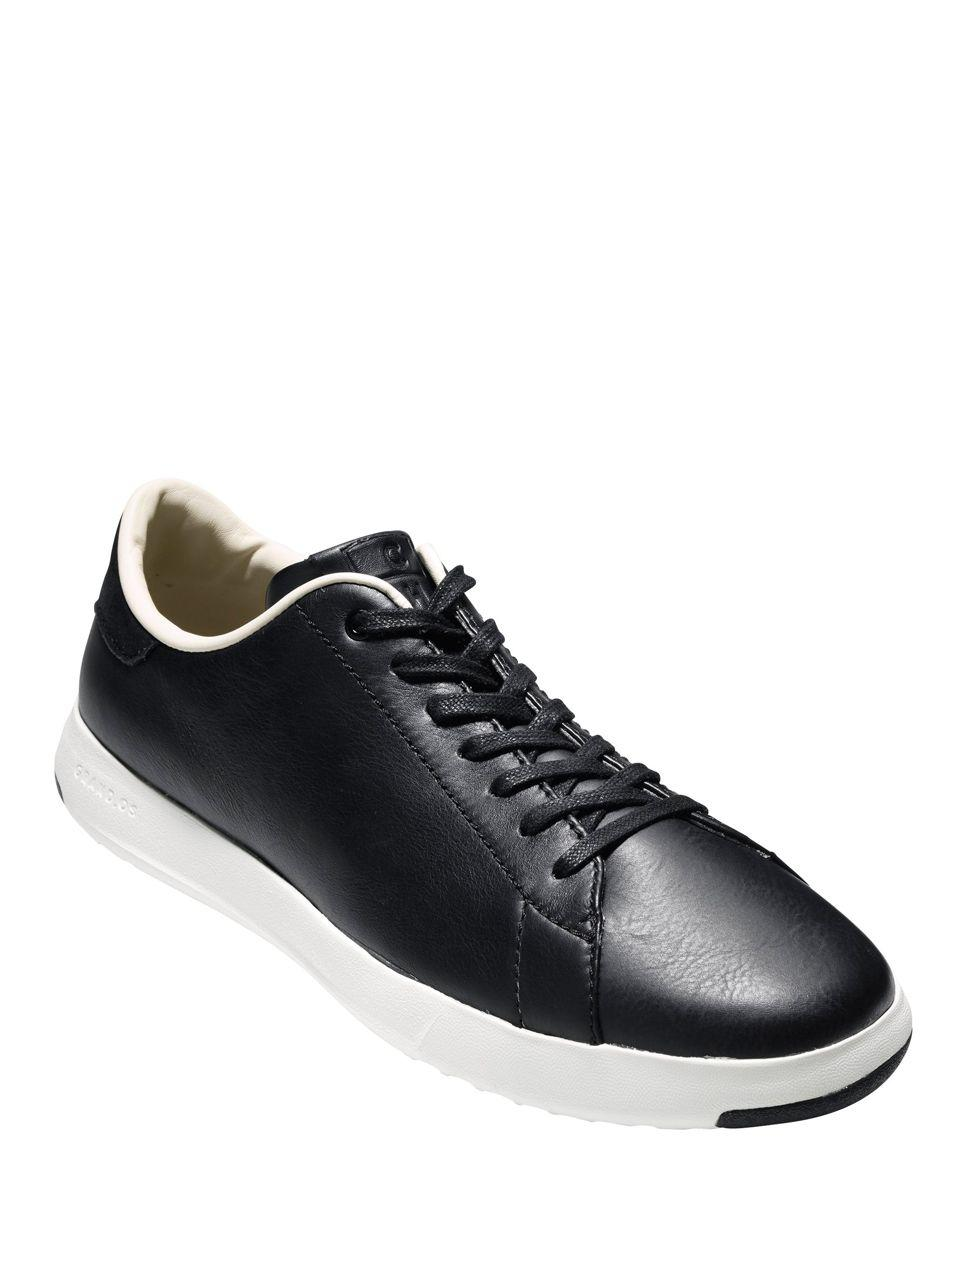 Cole Haan Black Tennis Shoes